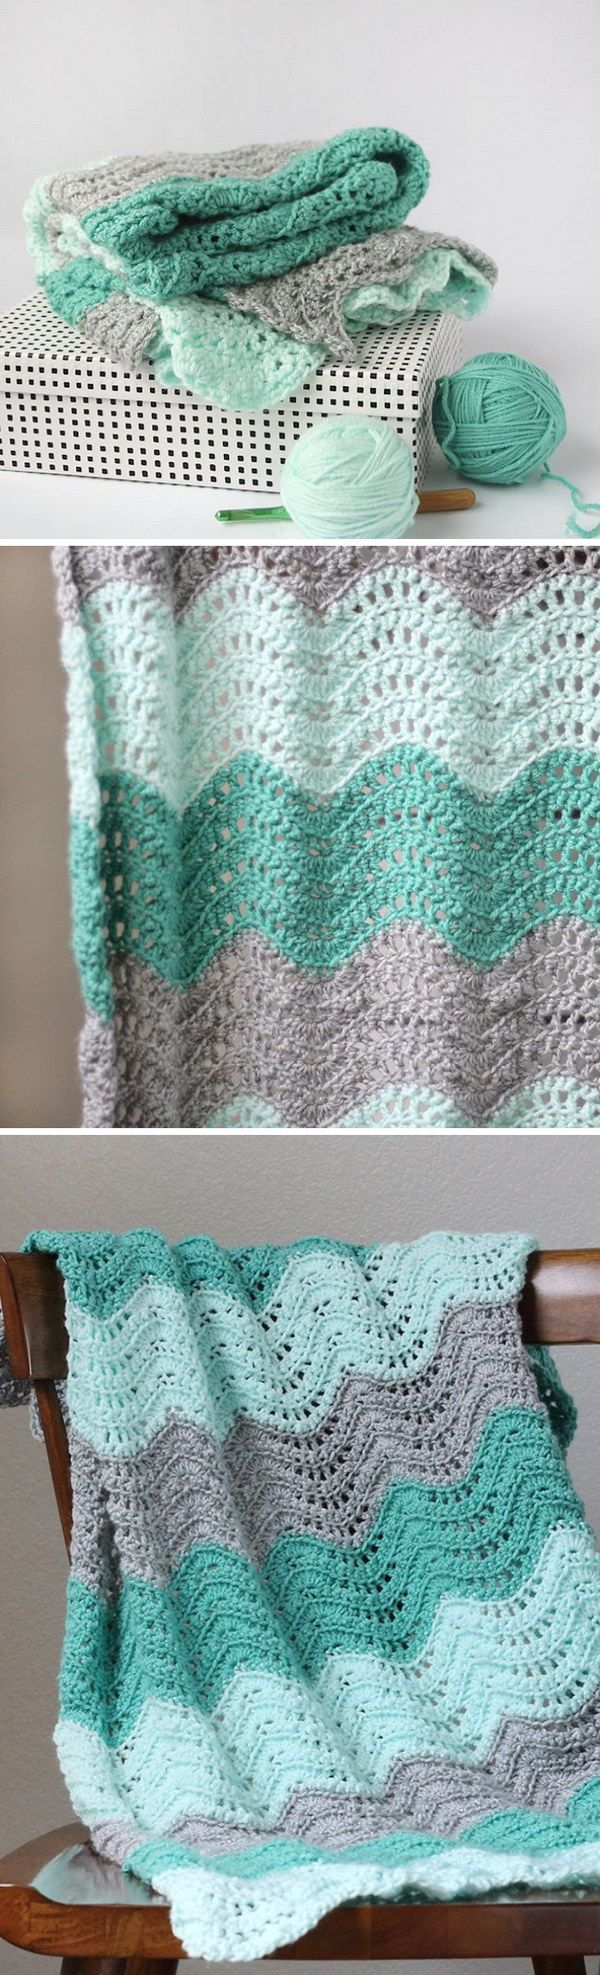 Feather And Fan Crocheted Baby Blanket. | Mantas | Pinterest | Manta ...